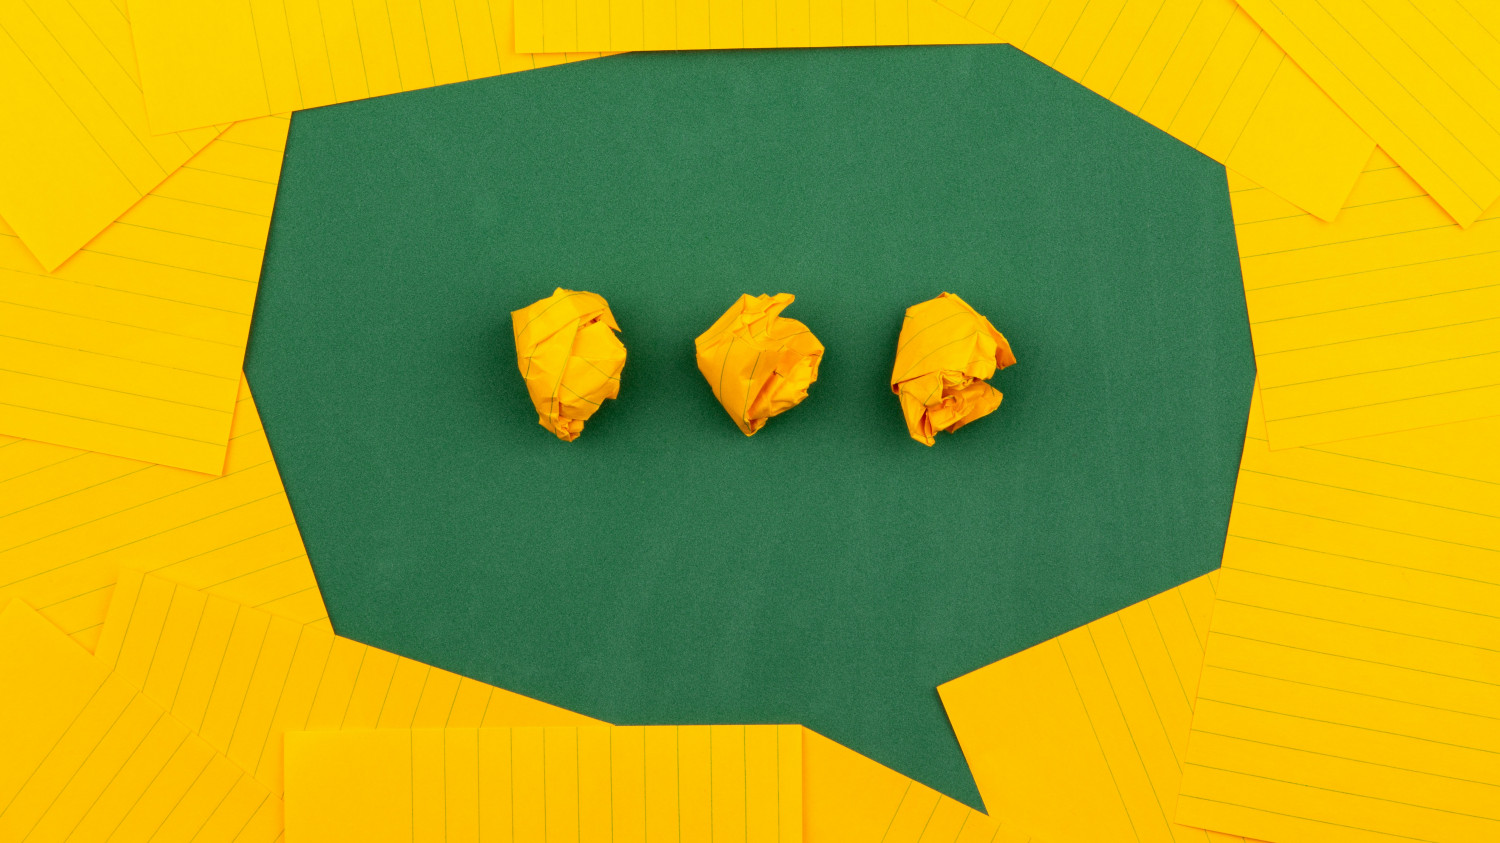 Image of a speech bubble made up of origami